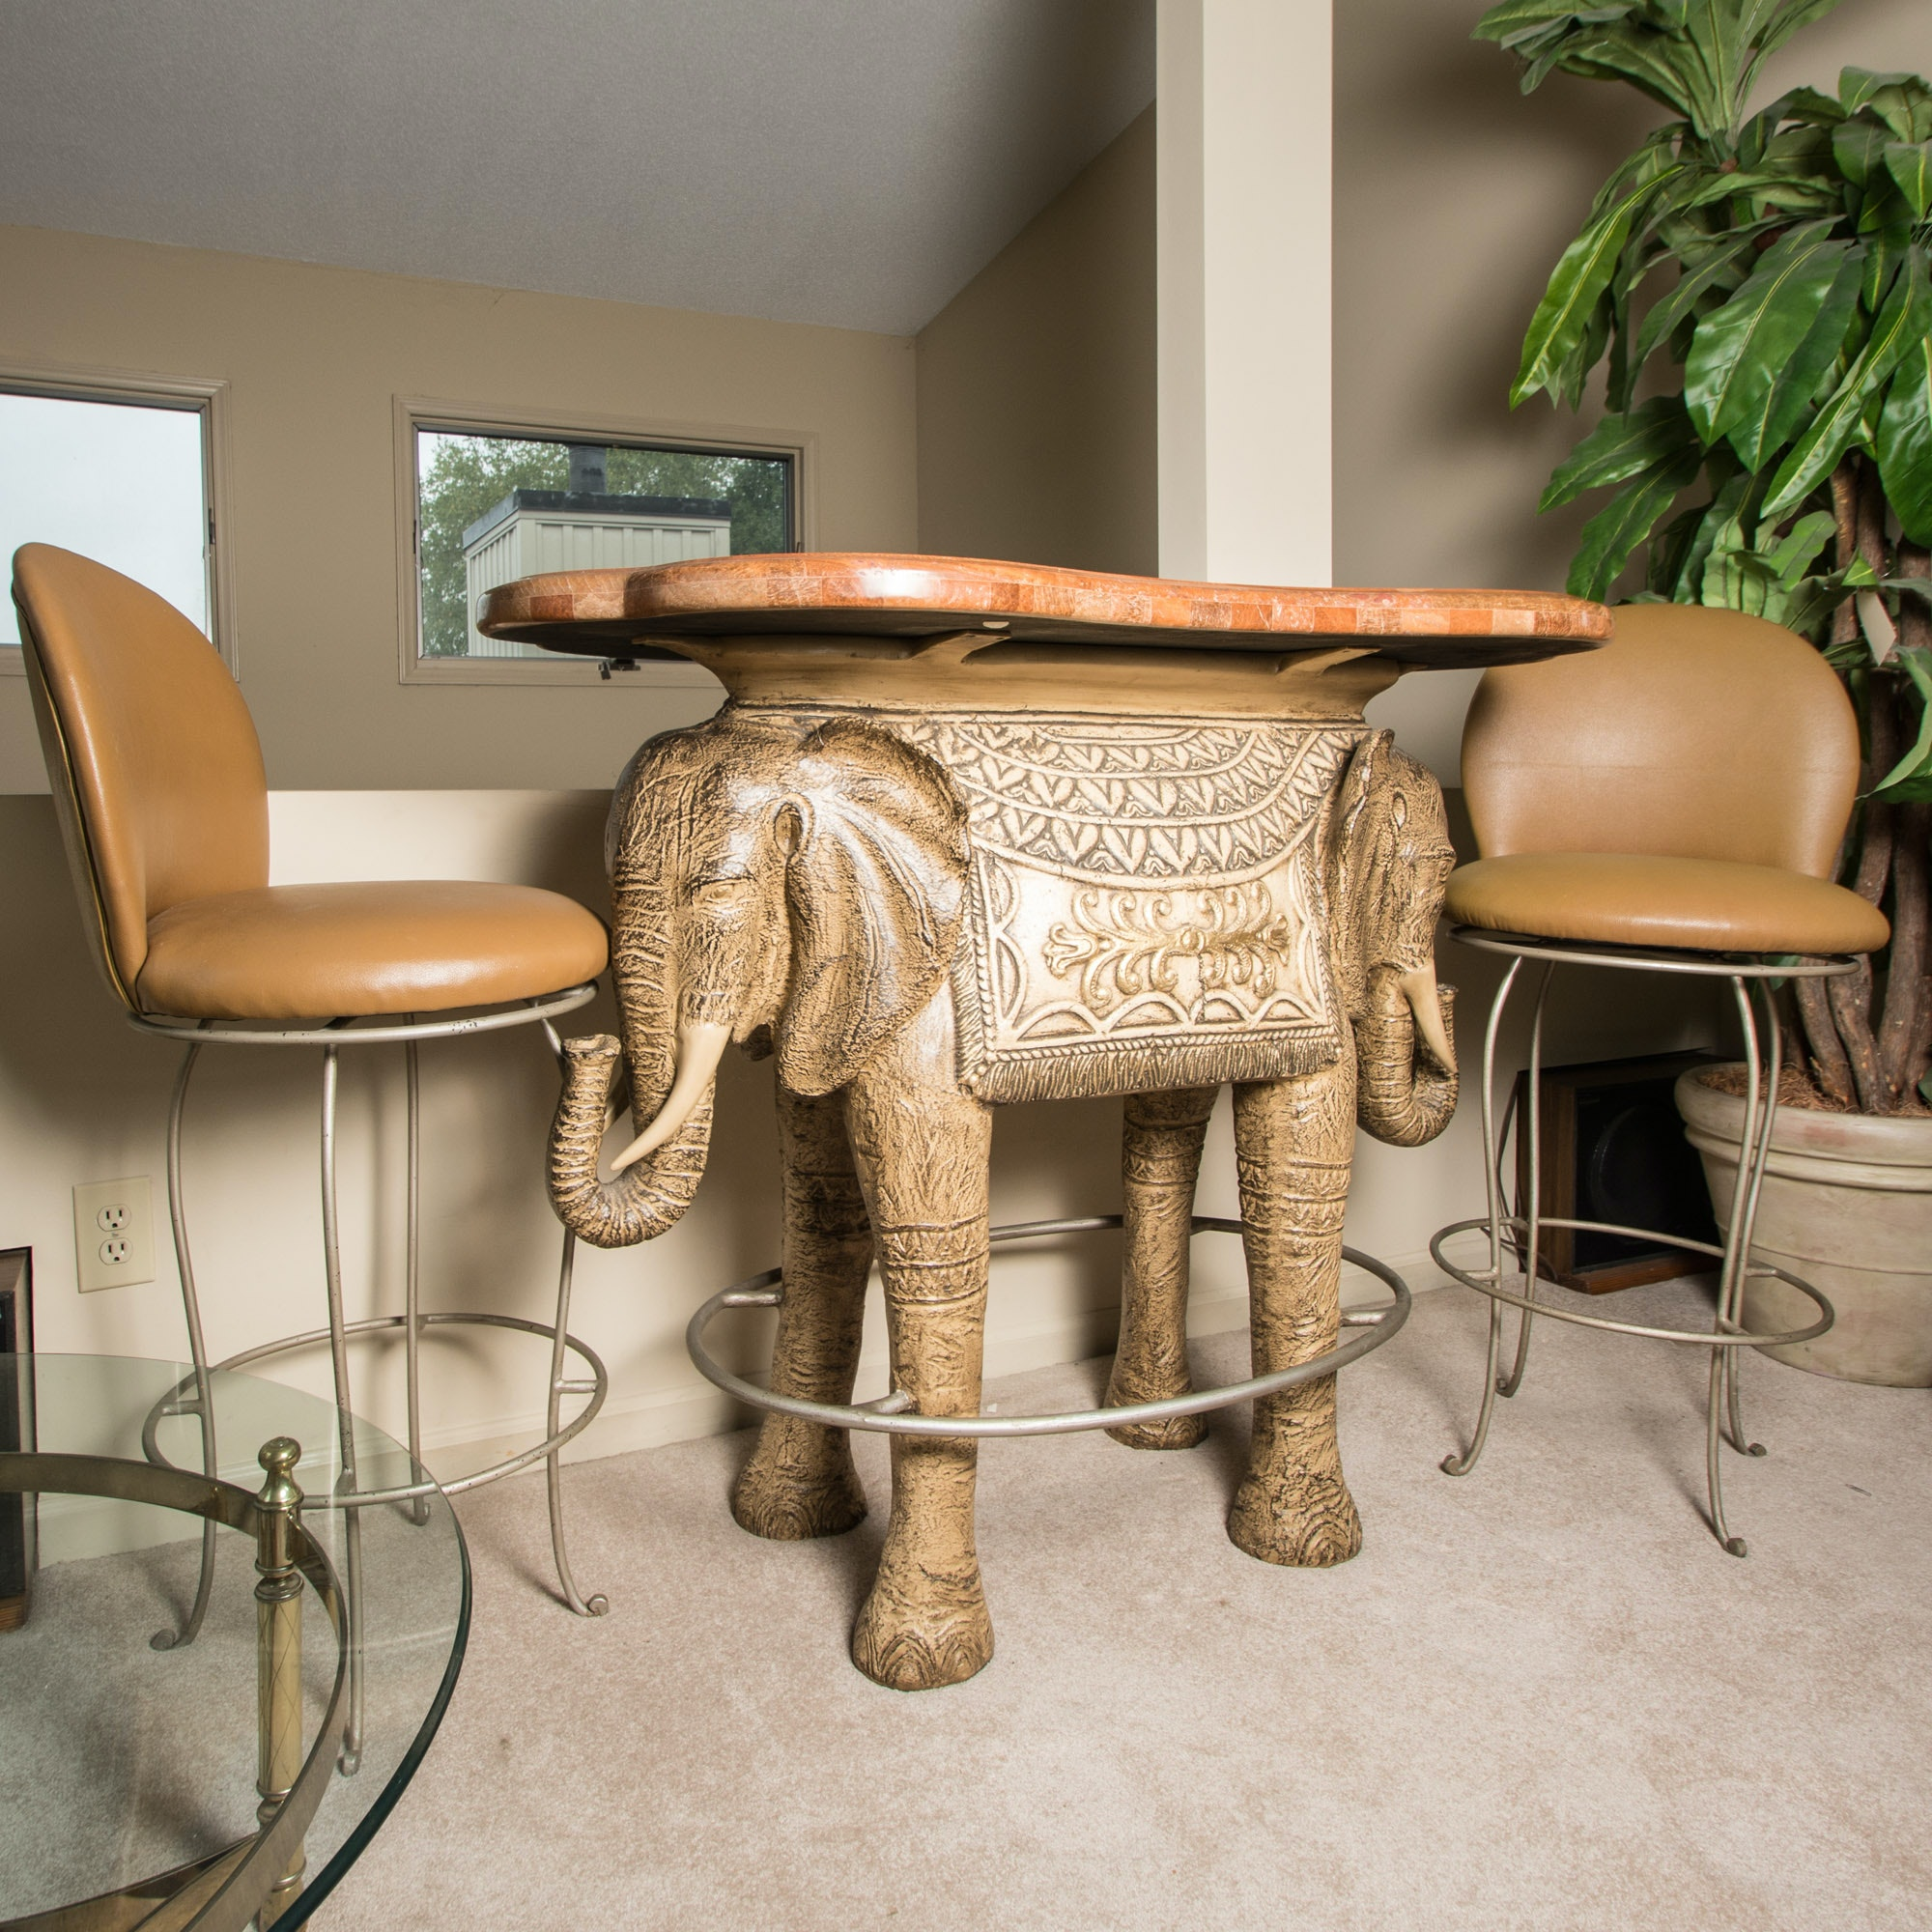 Elephant Bar Table with Stools